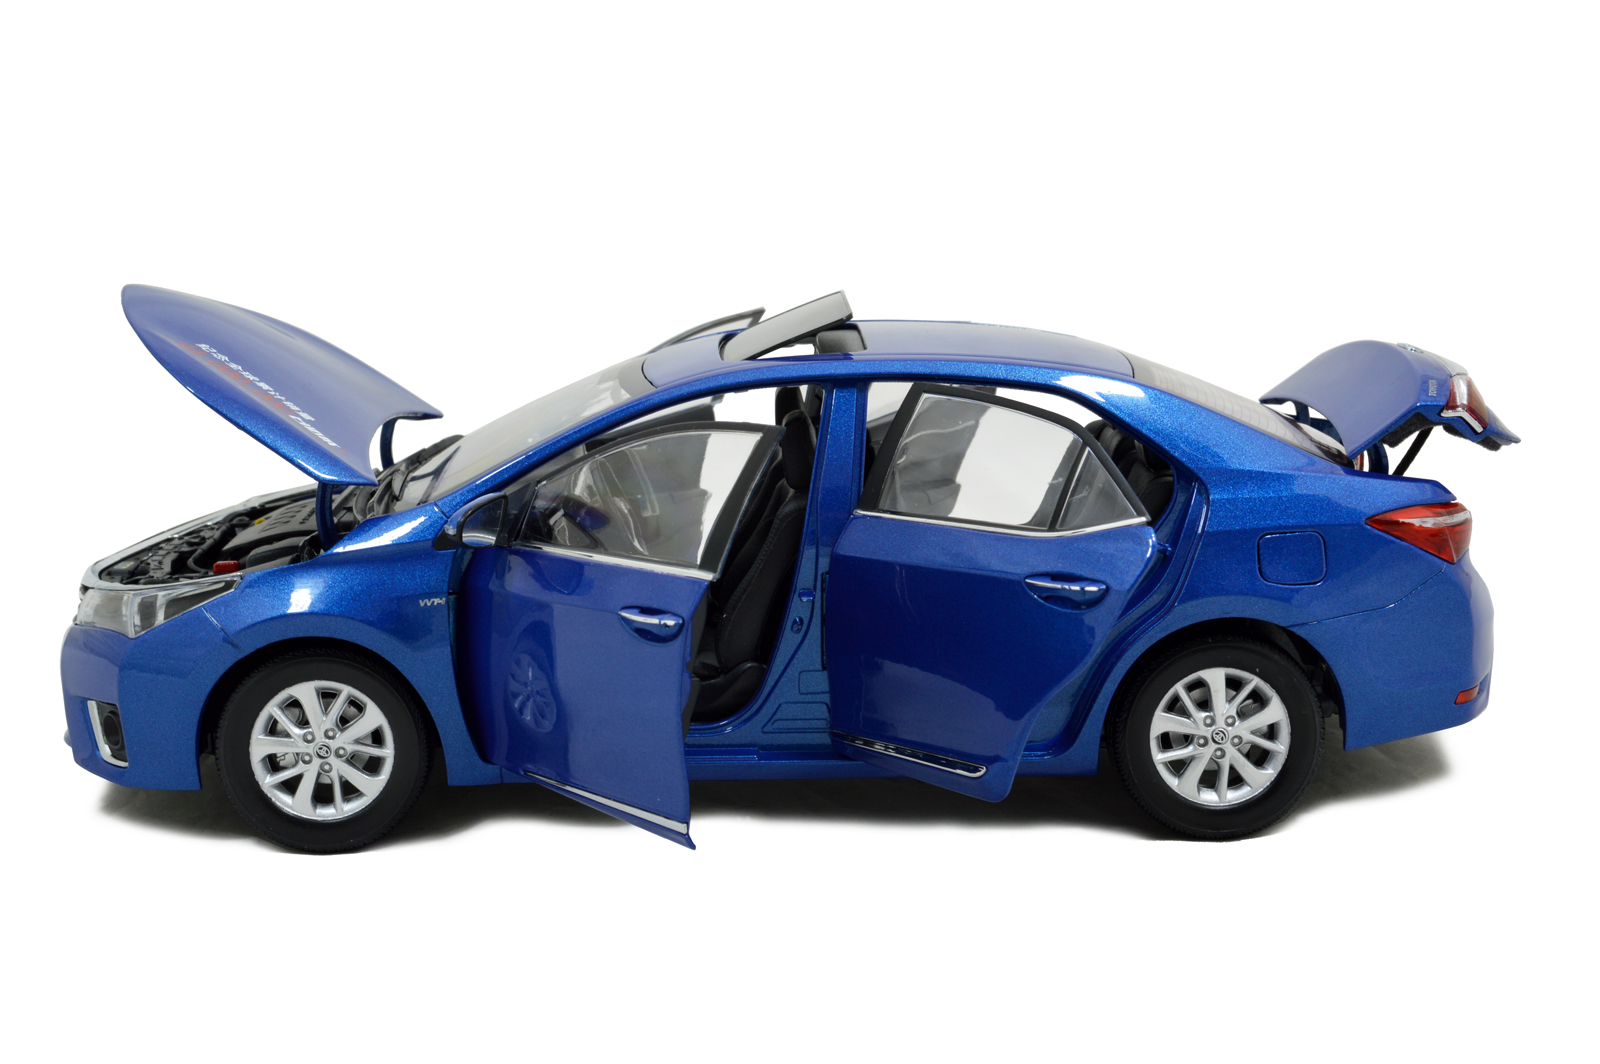 Toyota Corolla 2014 1 18 Scale Diecast Model Car Wholesale